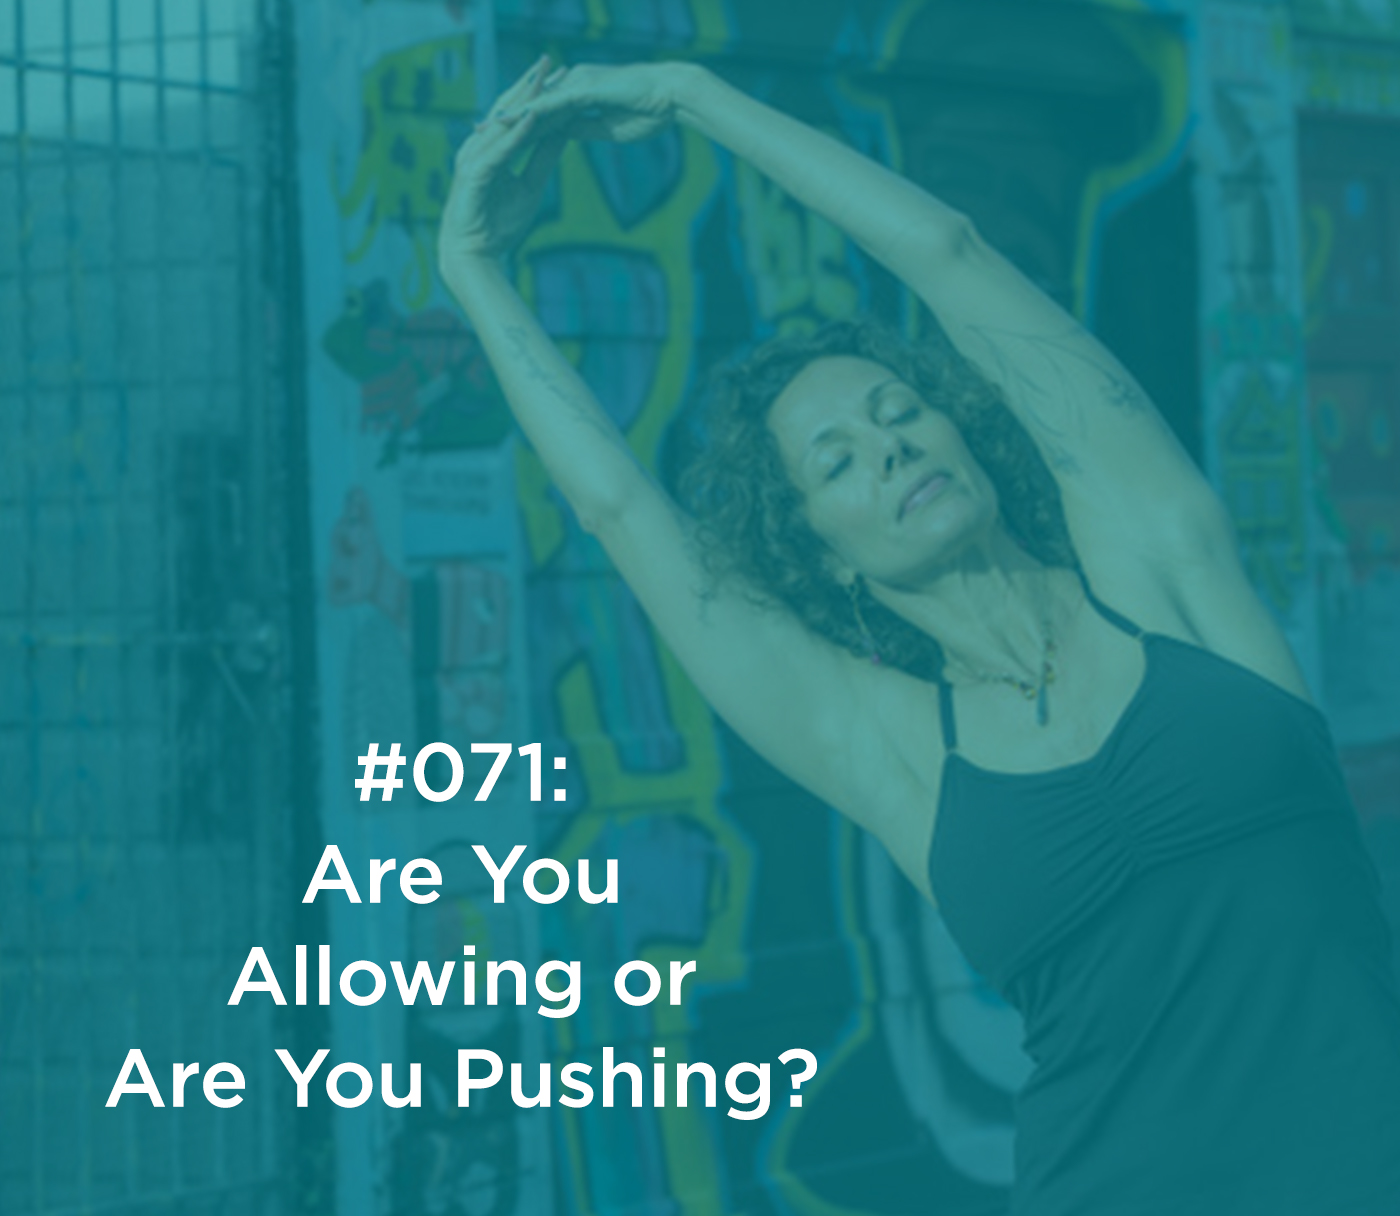 Are You Allowing or Are You Pushing?